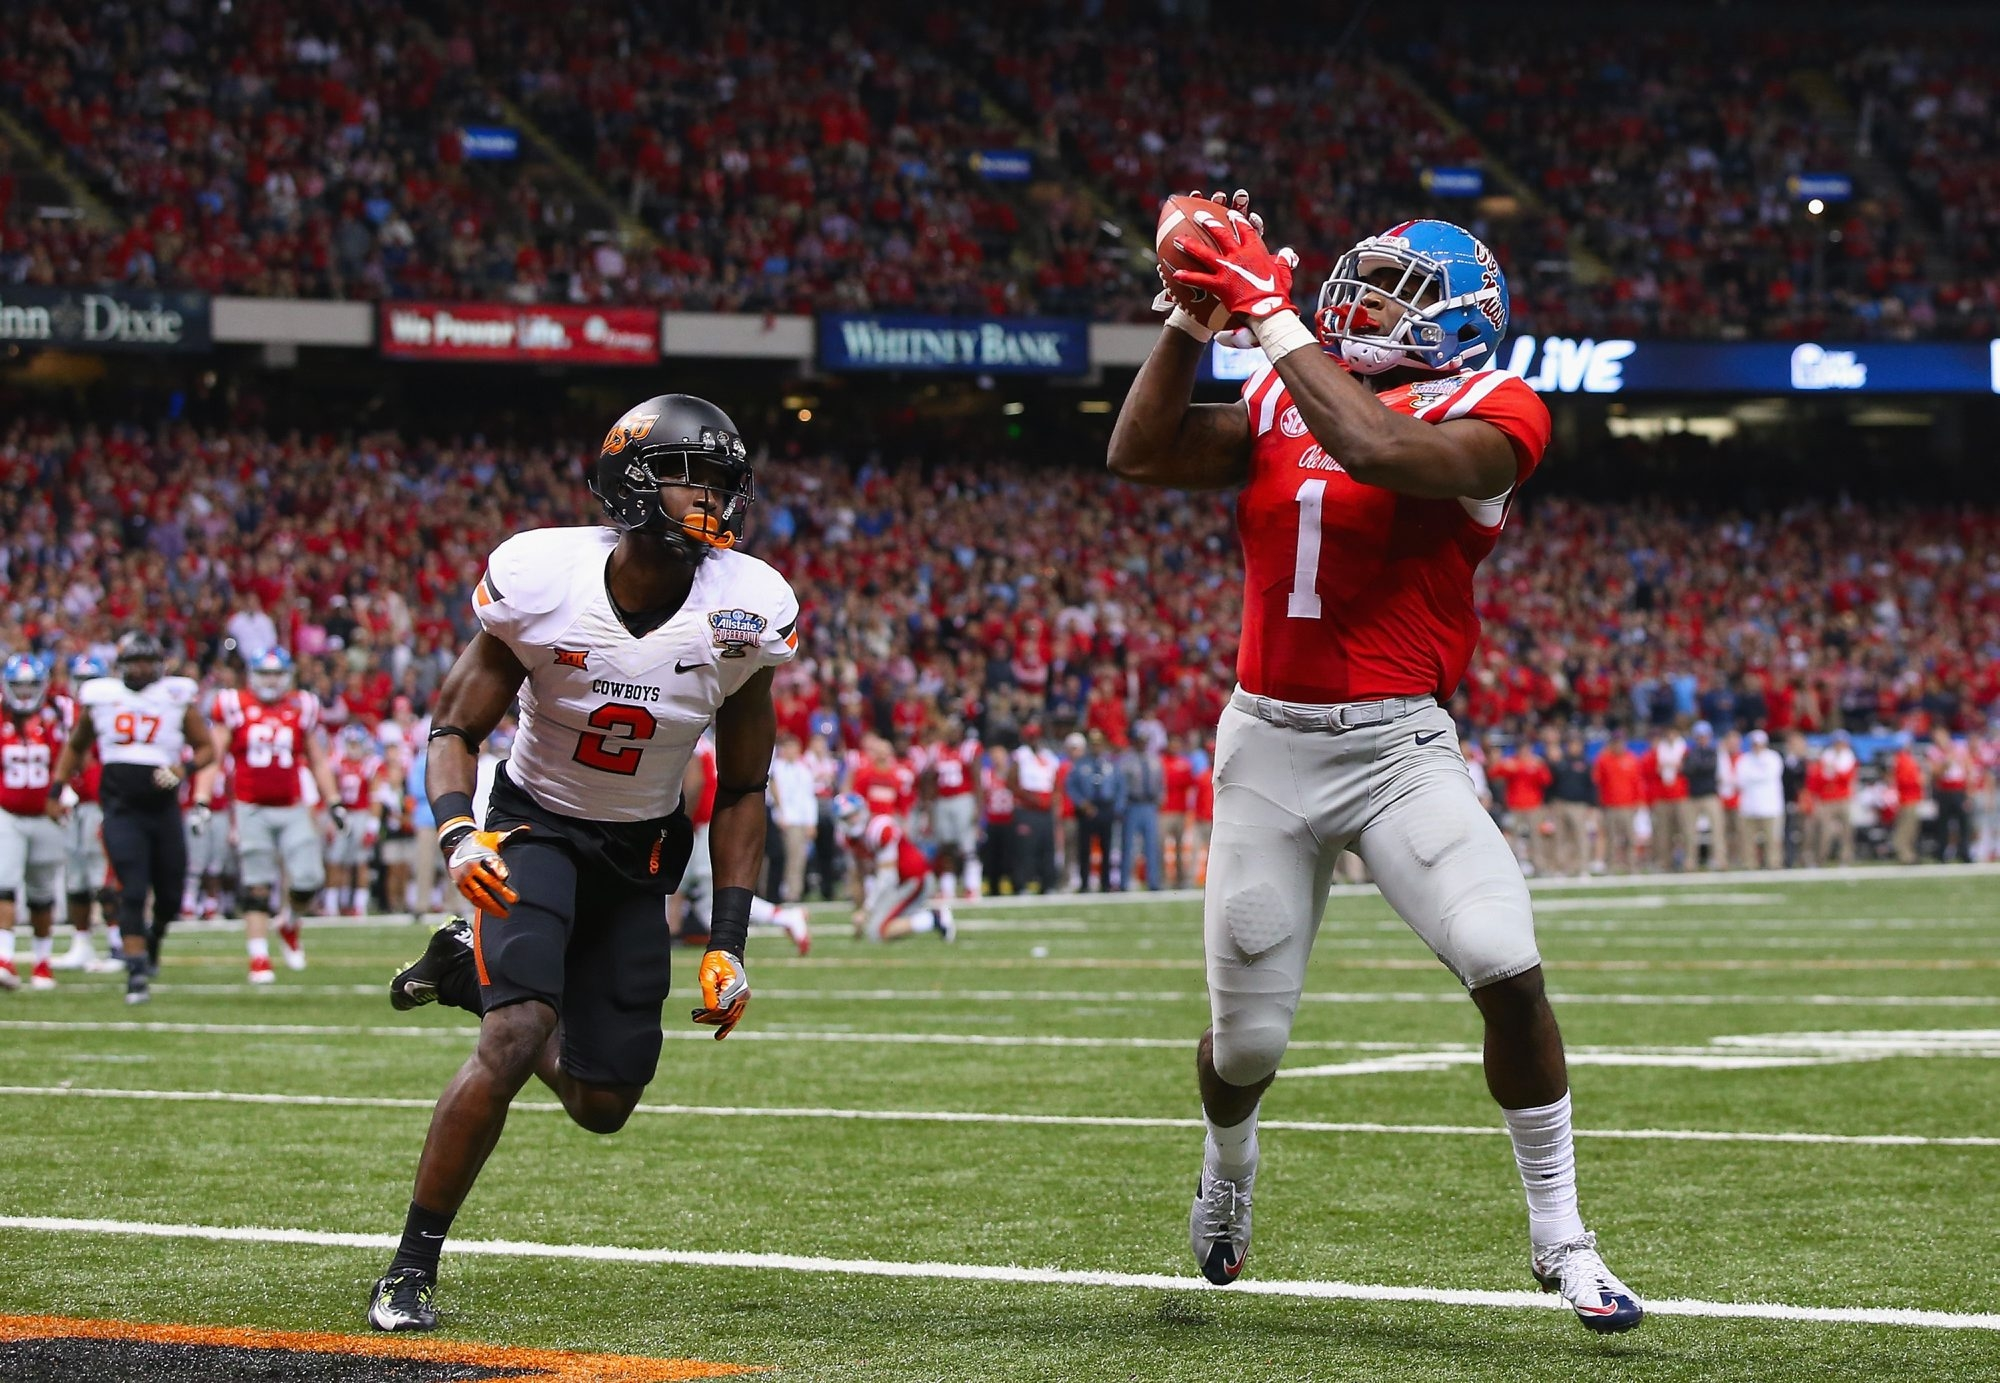 Mississippi receiver Laquon Treadwell burned Oklahoma State for three touchdowns in the Rebels' 48-20 win in the Sugar Bowl. Treadwell is rated by many as the top receiver in the NFL Draft.